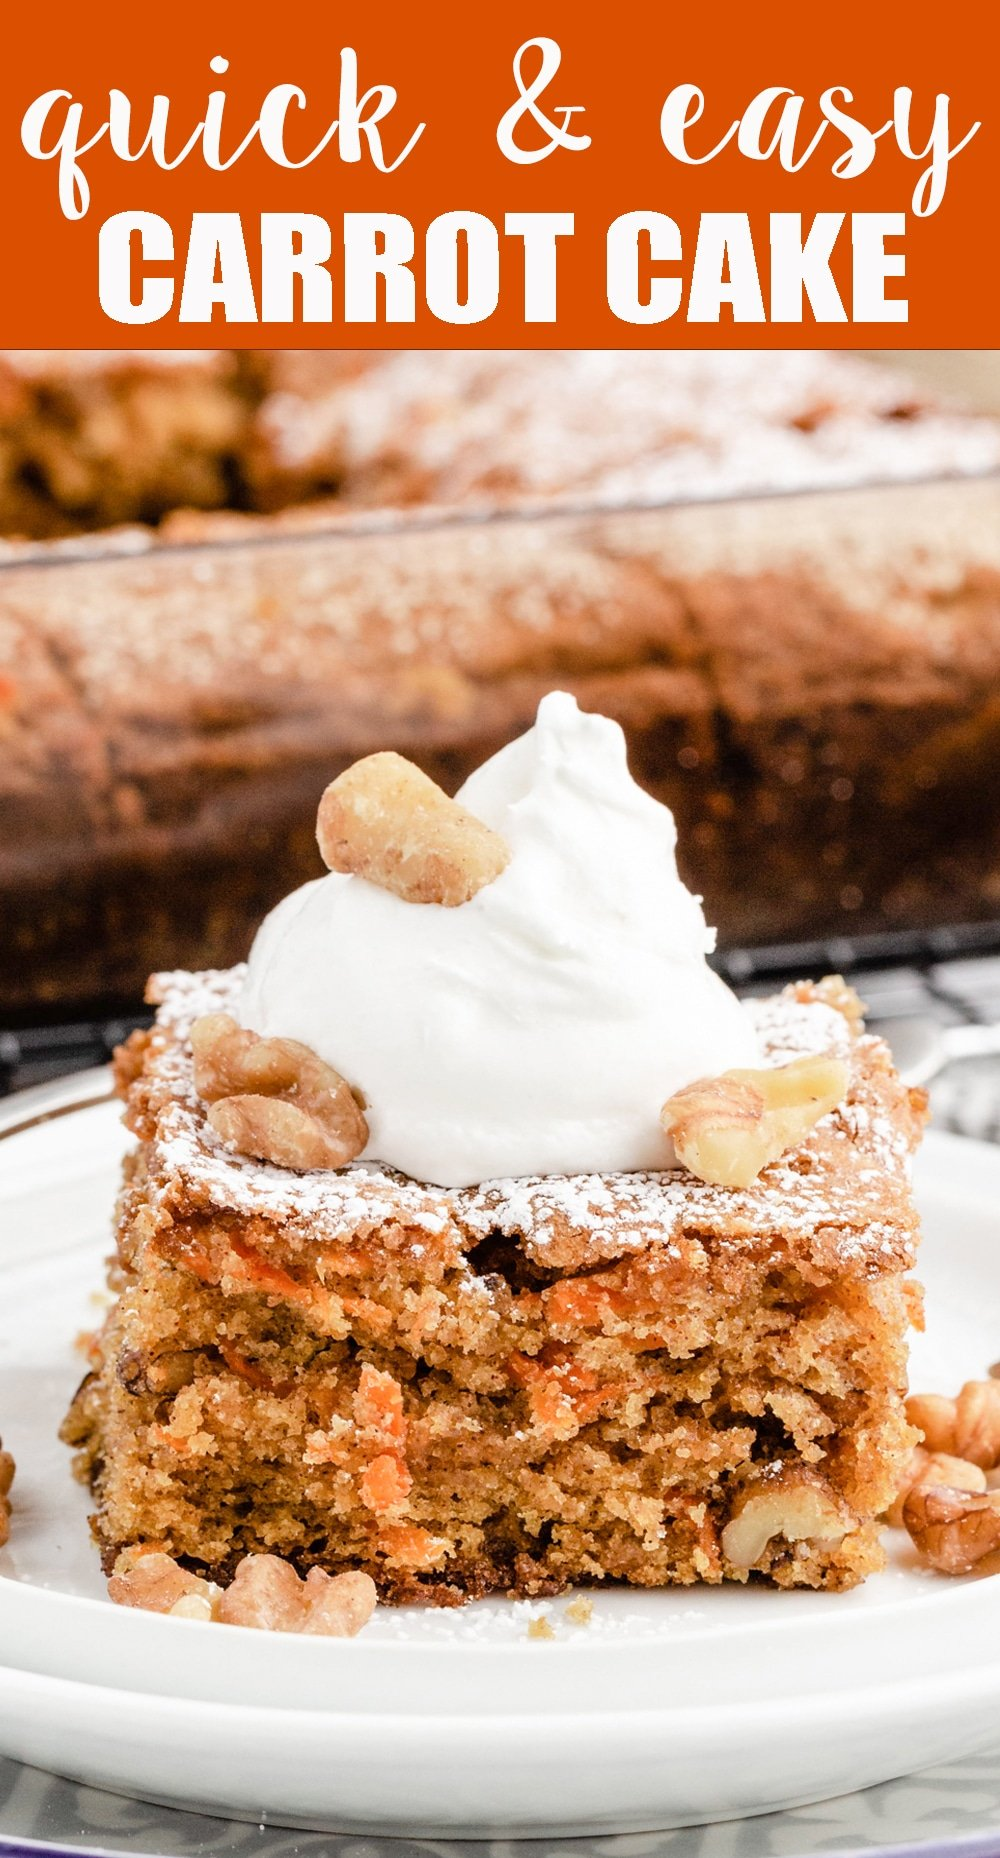 A deep-flavored, moist cake with carrots and walnuts in every bite. A dusting of powdered sugar tops this comforting carrot walnut cake. via @tastesoflizzyt